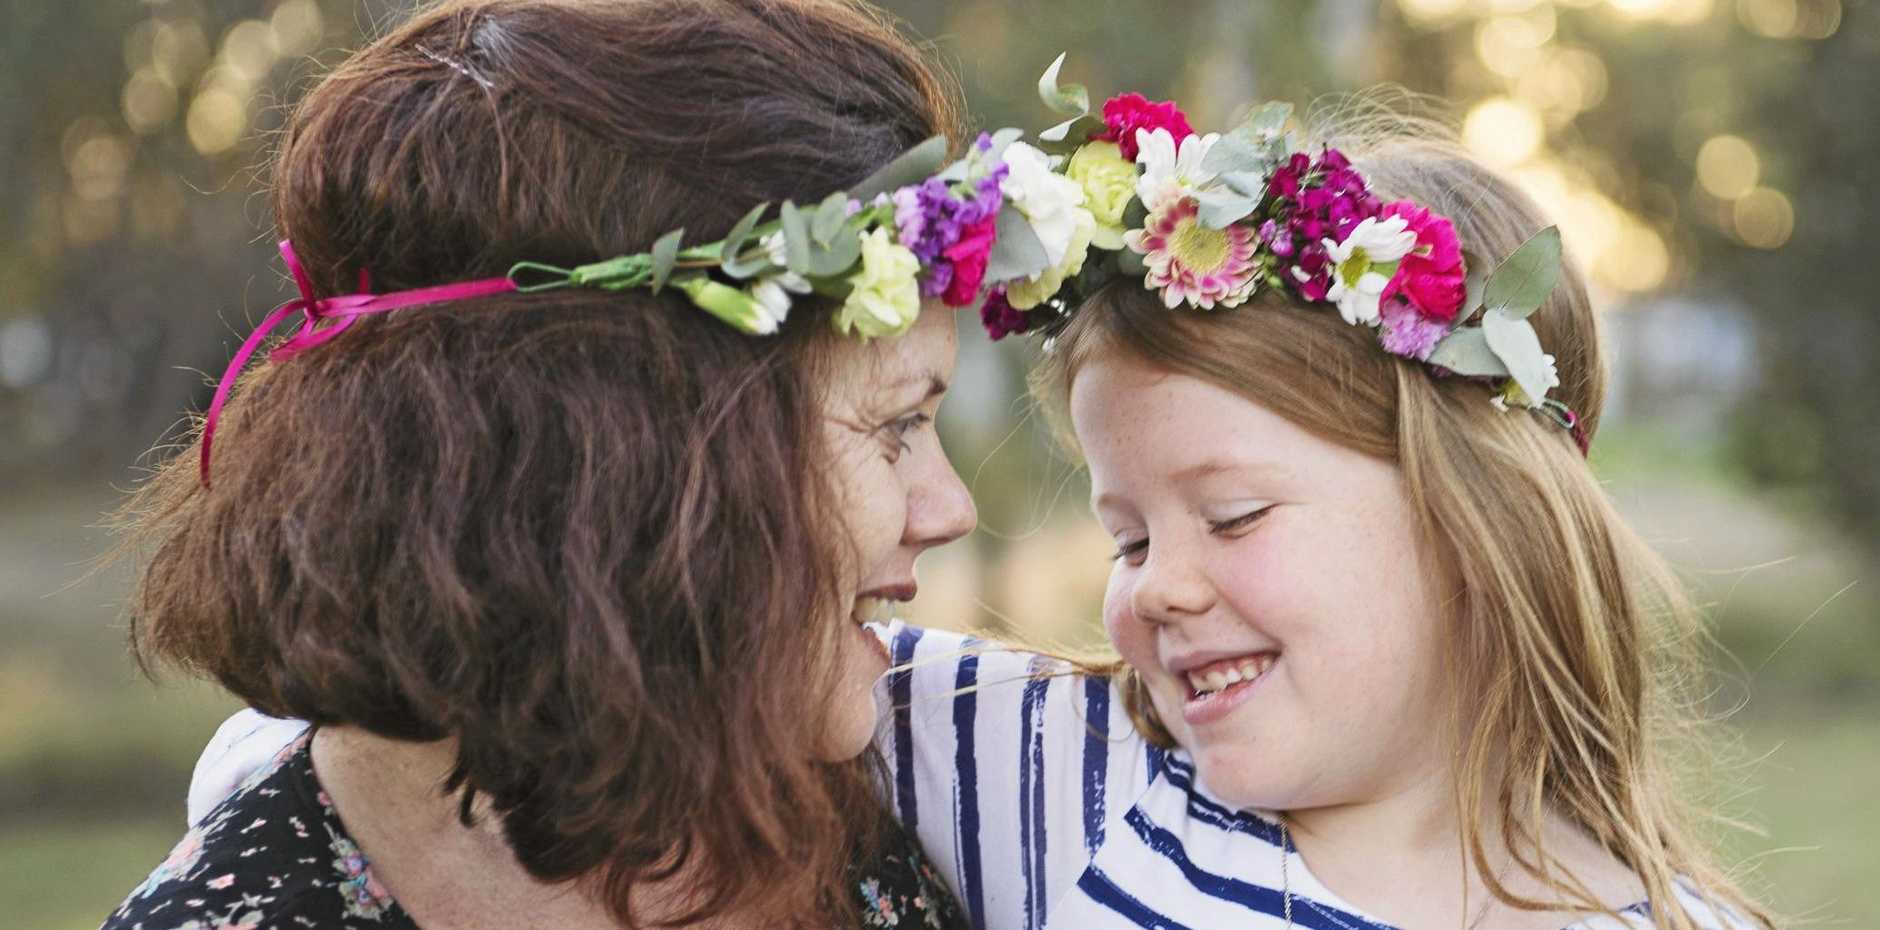 FONDLY REMEMBERED: Leisa Martin with granddaughter Summer McKelvey before her passing.